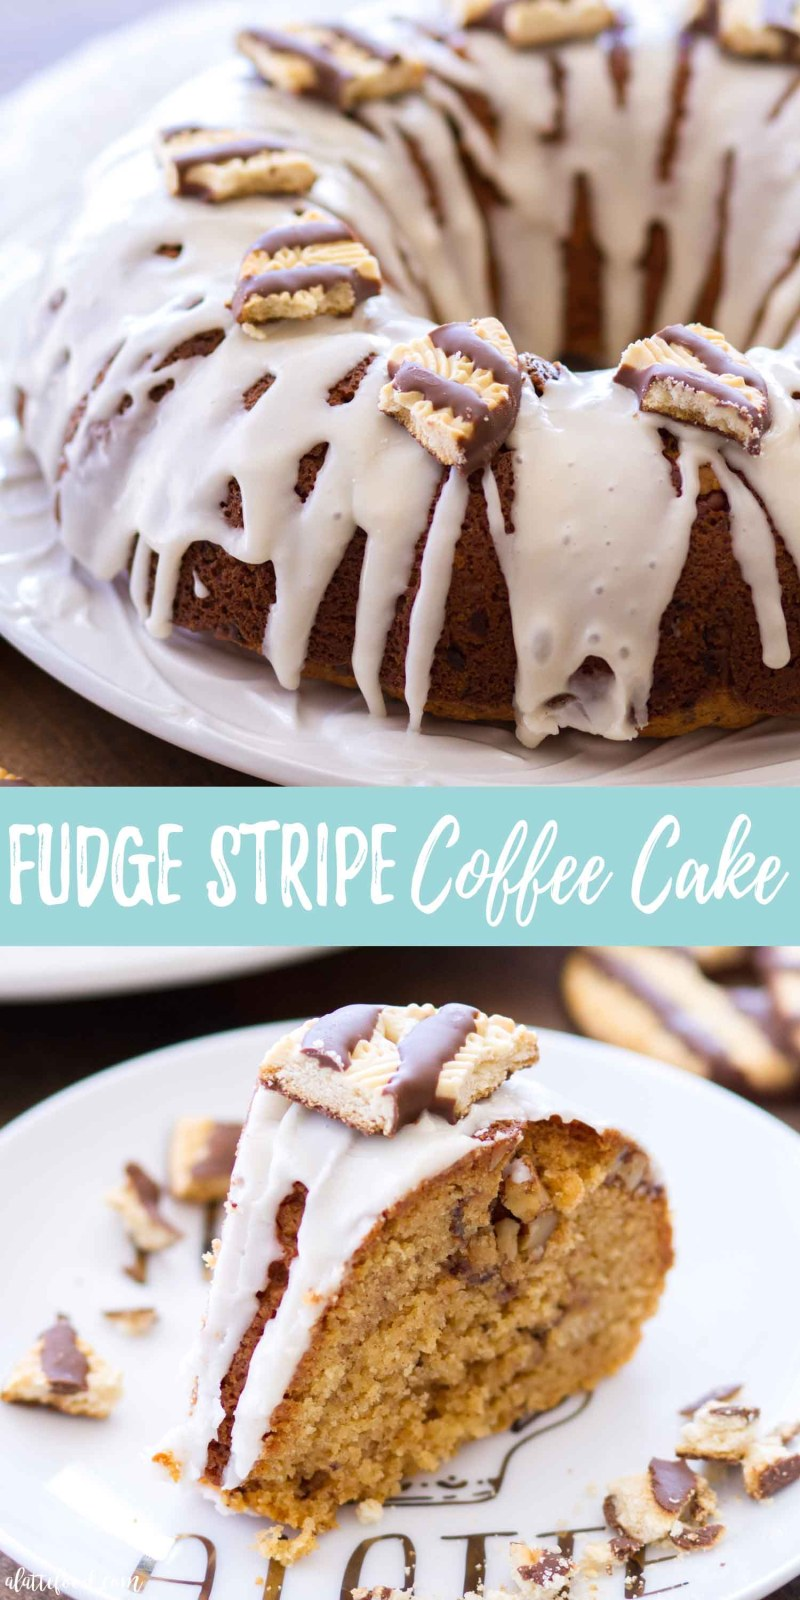 The best holiday dessert is this Fudge Stripe Coffee Cake Bundt Cake Recipe with a Vanilla Glaze